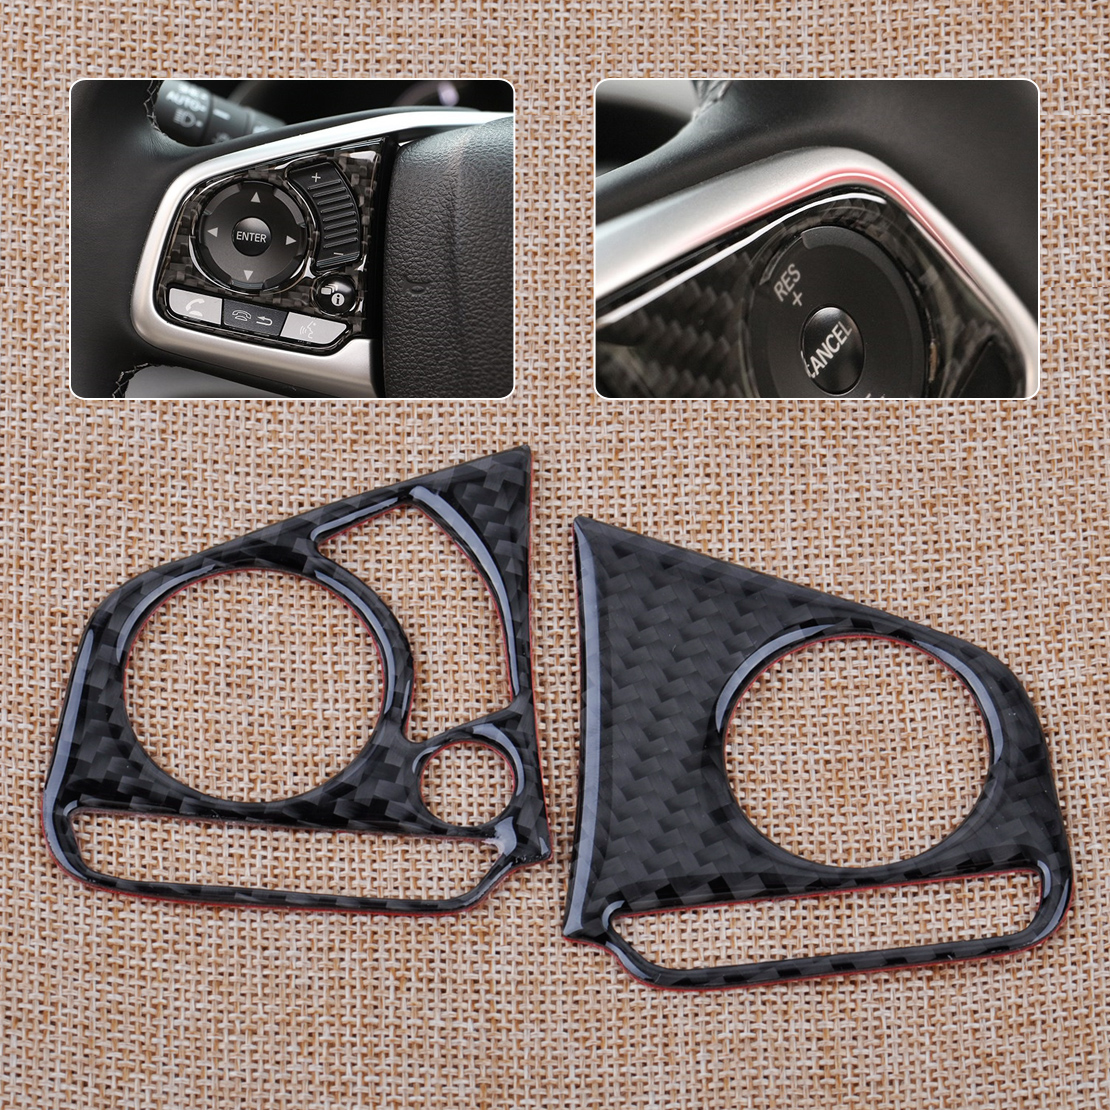 CITALL 2pcs car-styling Carbon Fiber Auto Steering Wheel Button Cover Trim Decor Fit For Honda Civic 10th 2016